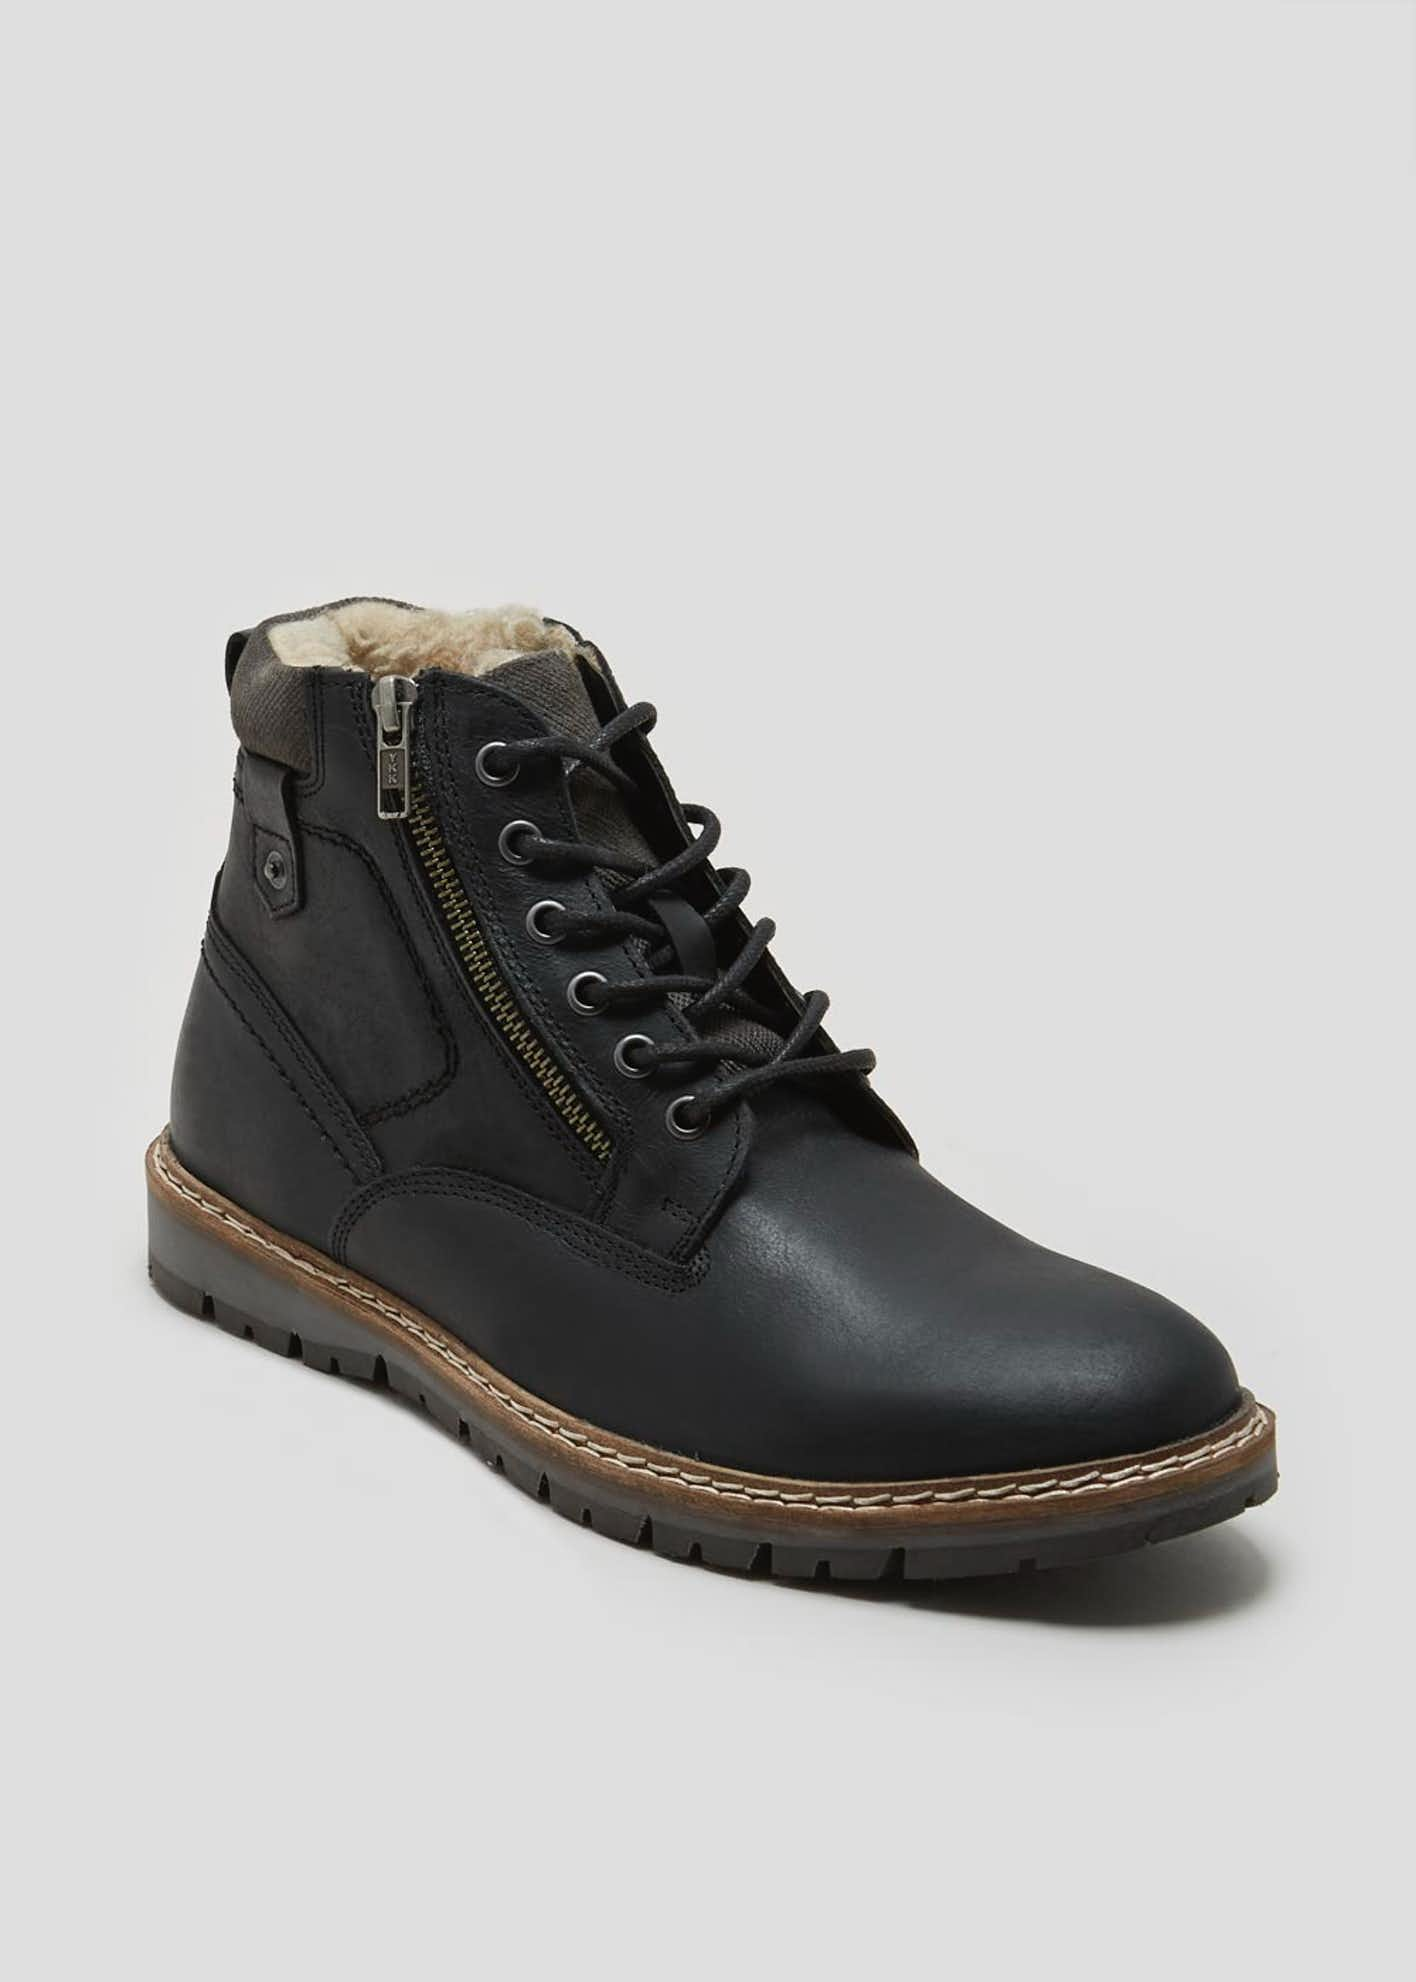 Real Leather Fur Lined Lace Up Boots